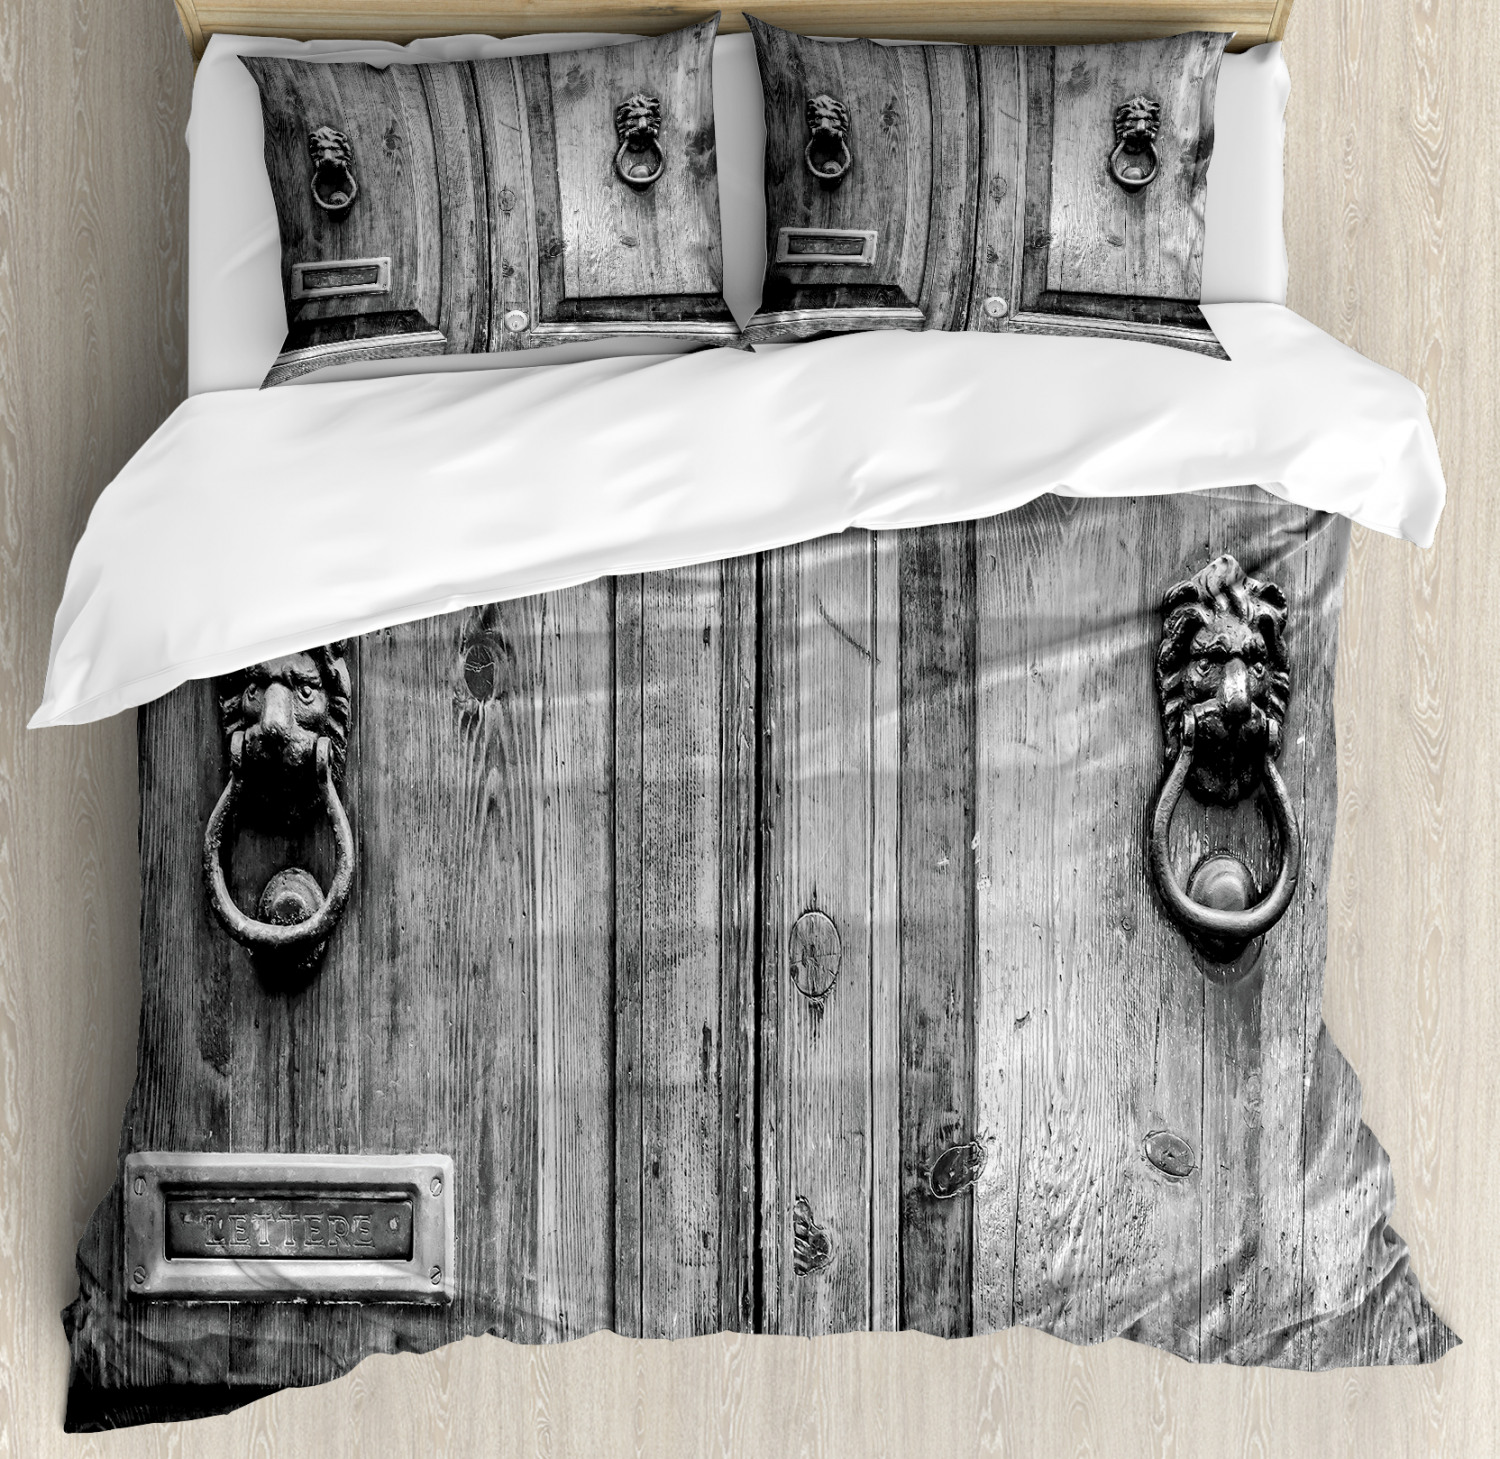 Rustic Duvet Cover Set Black And White Photography Of Tuscany House Doorway Florence With Lion Head Handlers Decorative Bedding Set With Pillow Shams Grey By Ambesonne Walmart Com Walmart Com